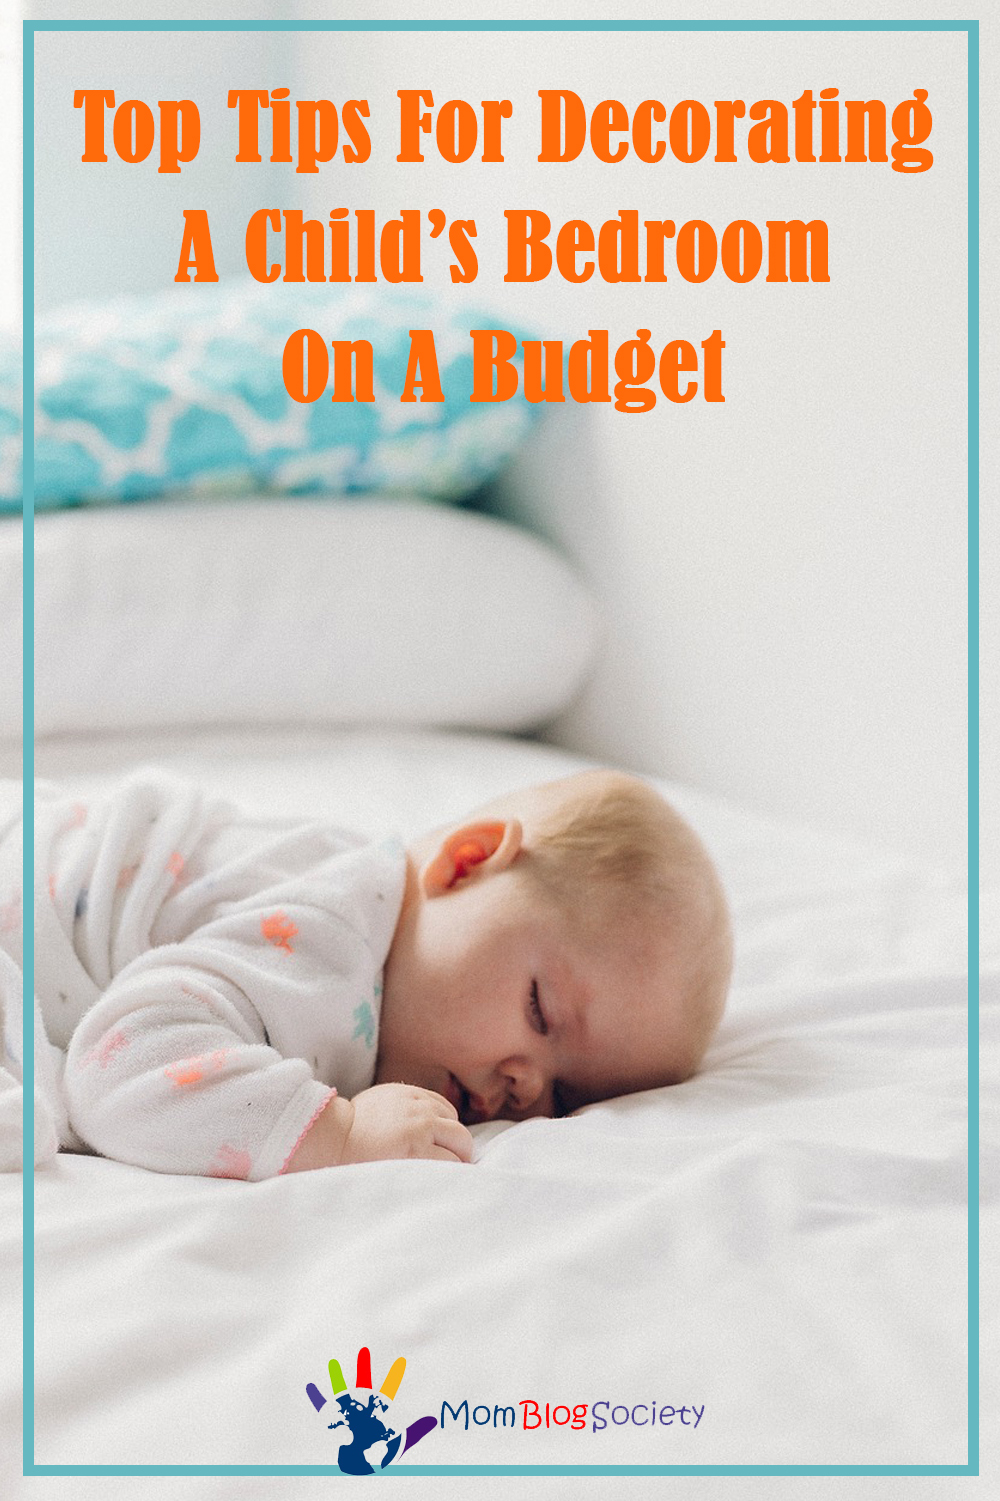 Top Tips For Decorating A Child's Bedroom On A Budget